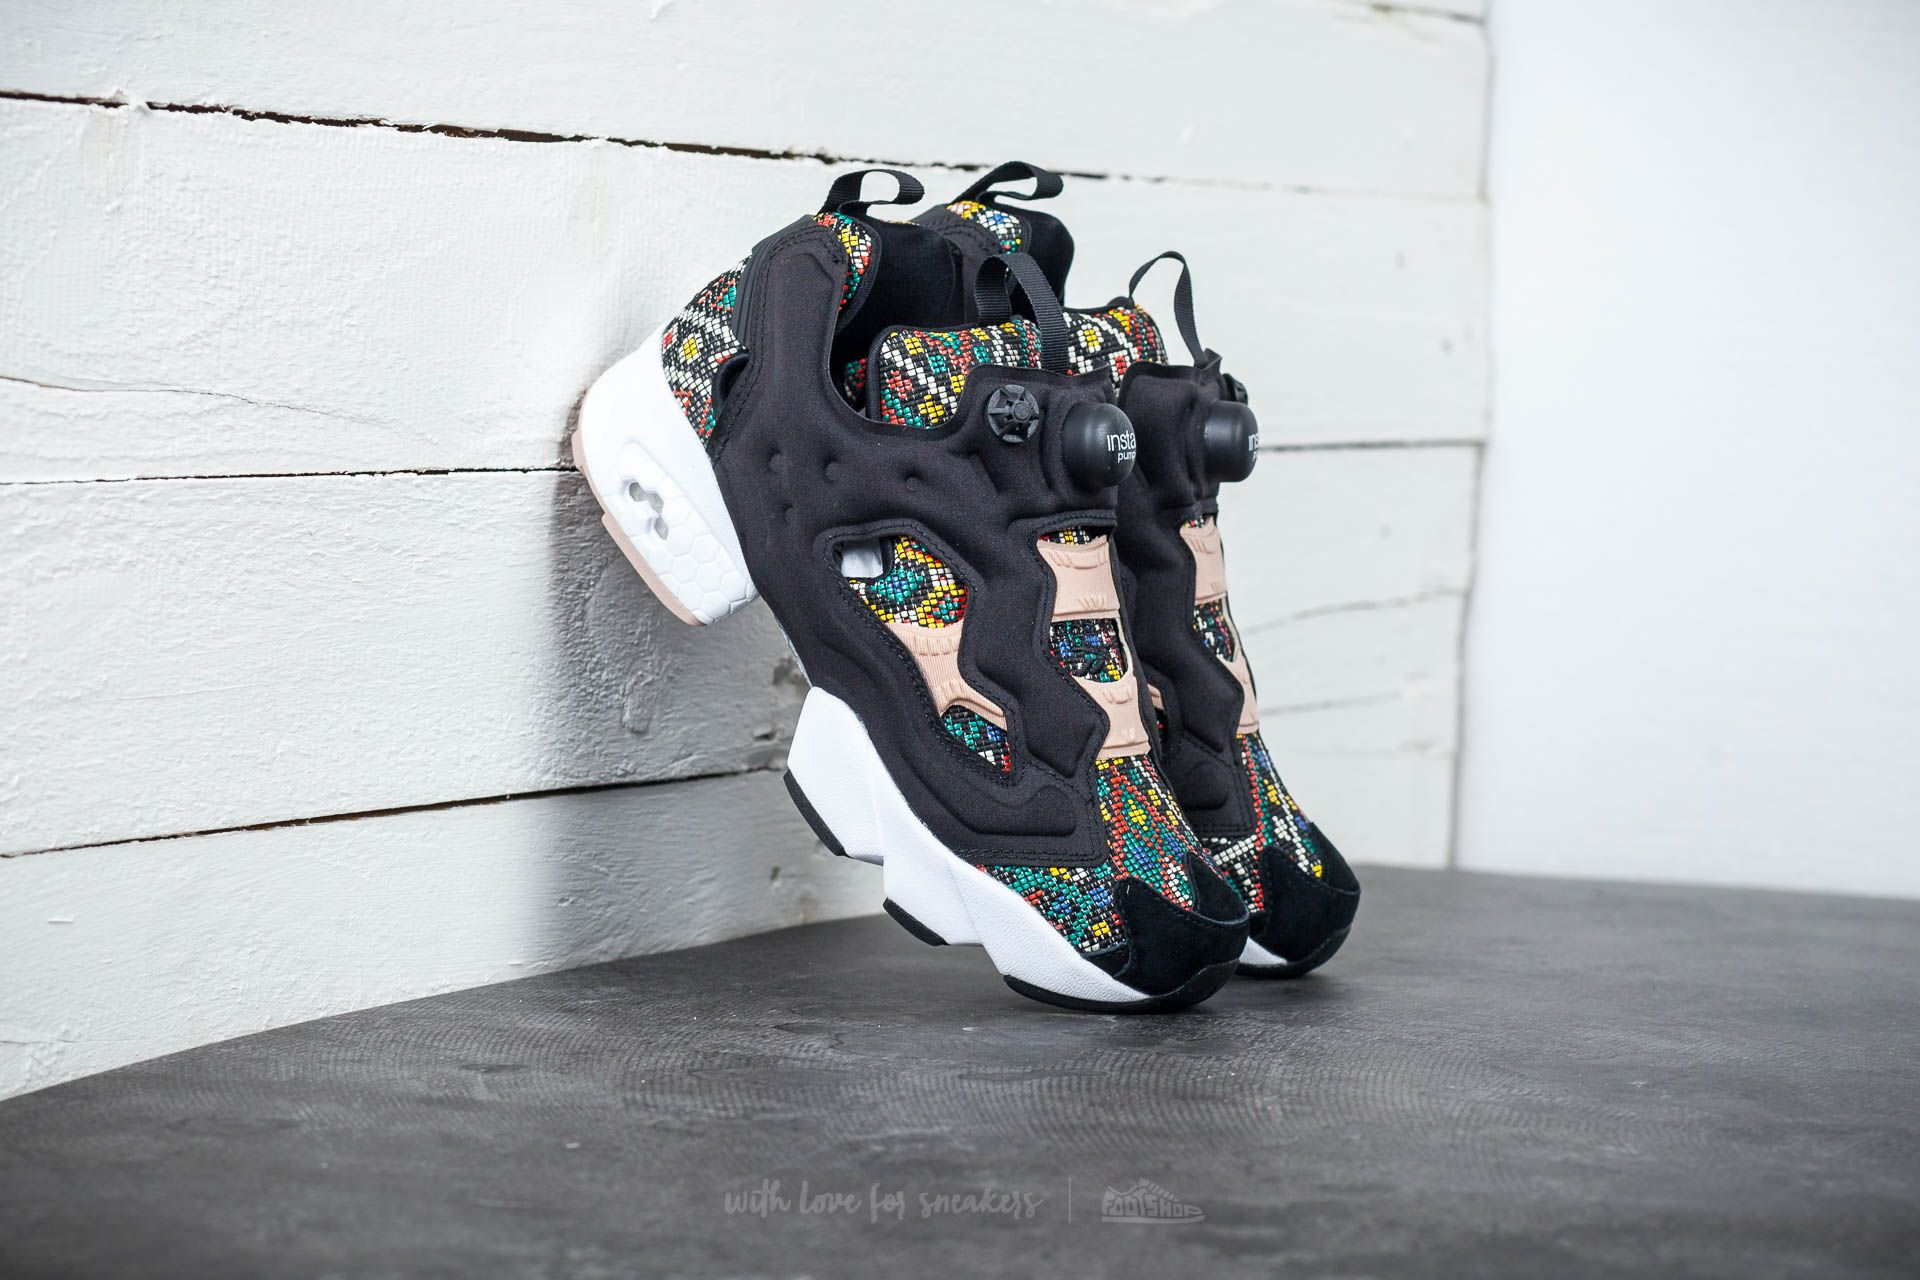 56556103af25 Reebok Instapump Fury GT Black  White  Dusty Pink